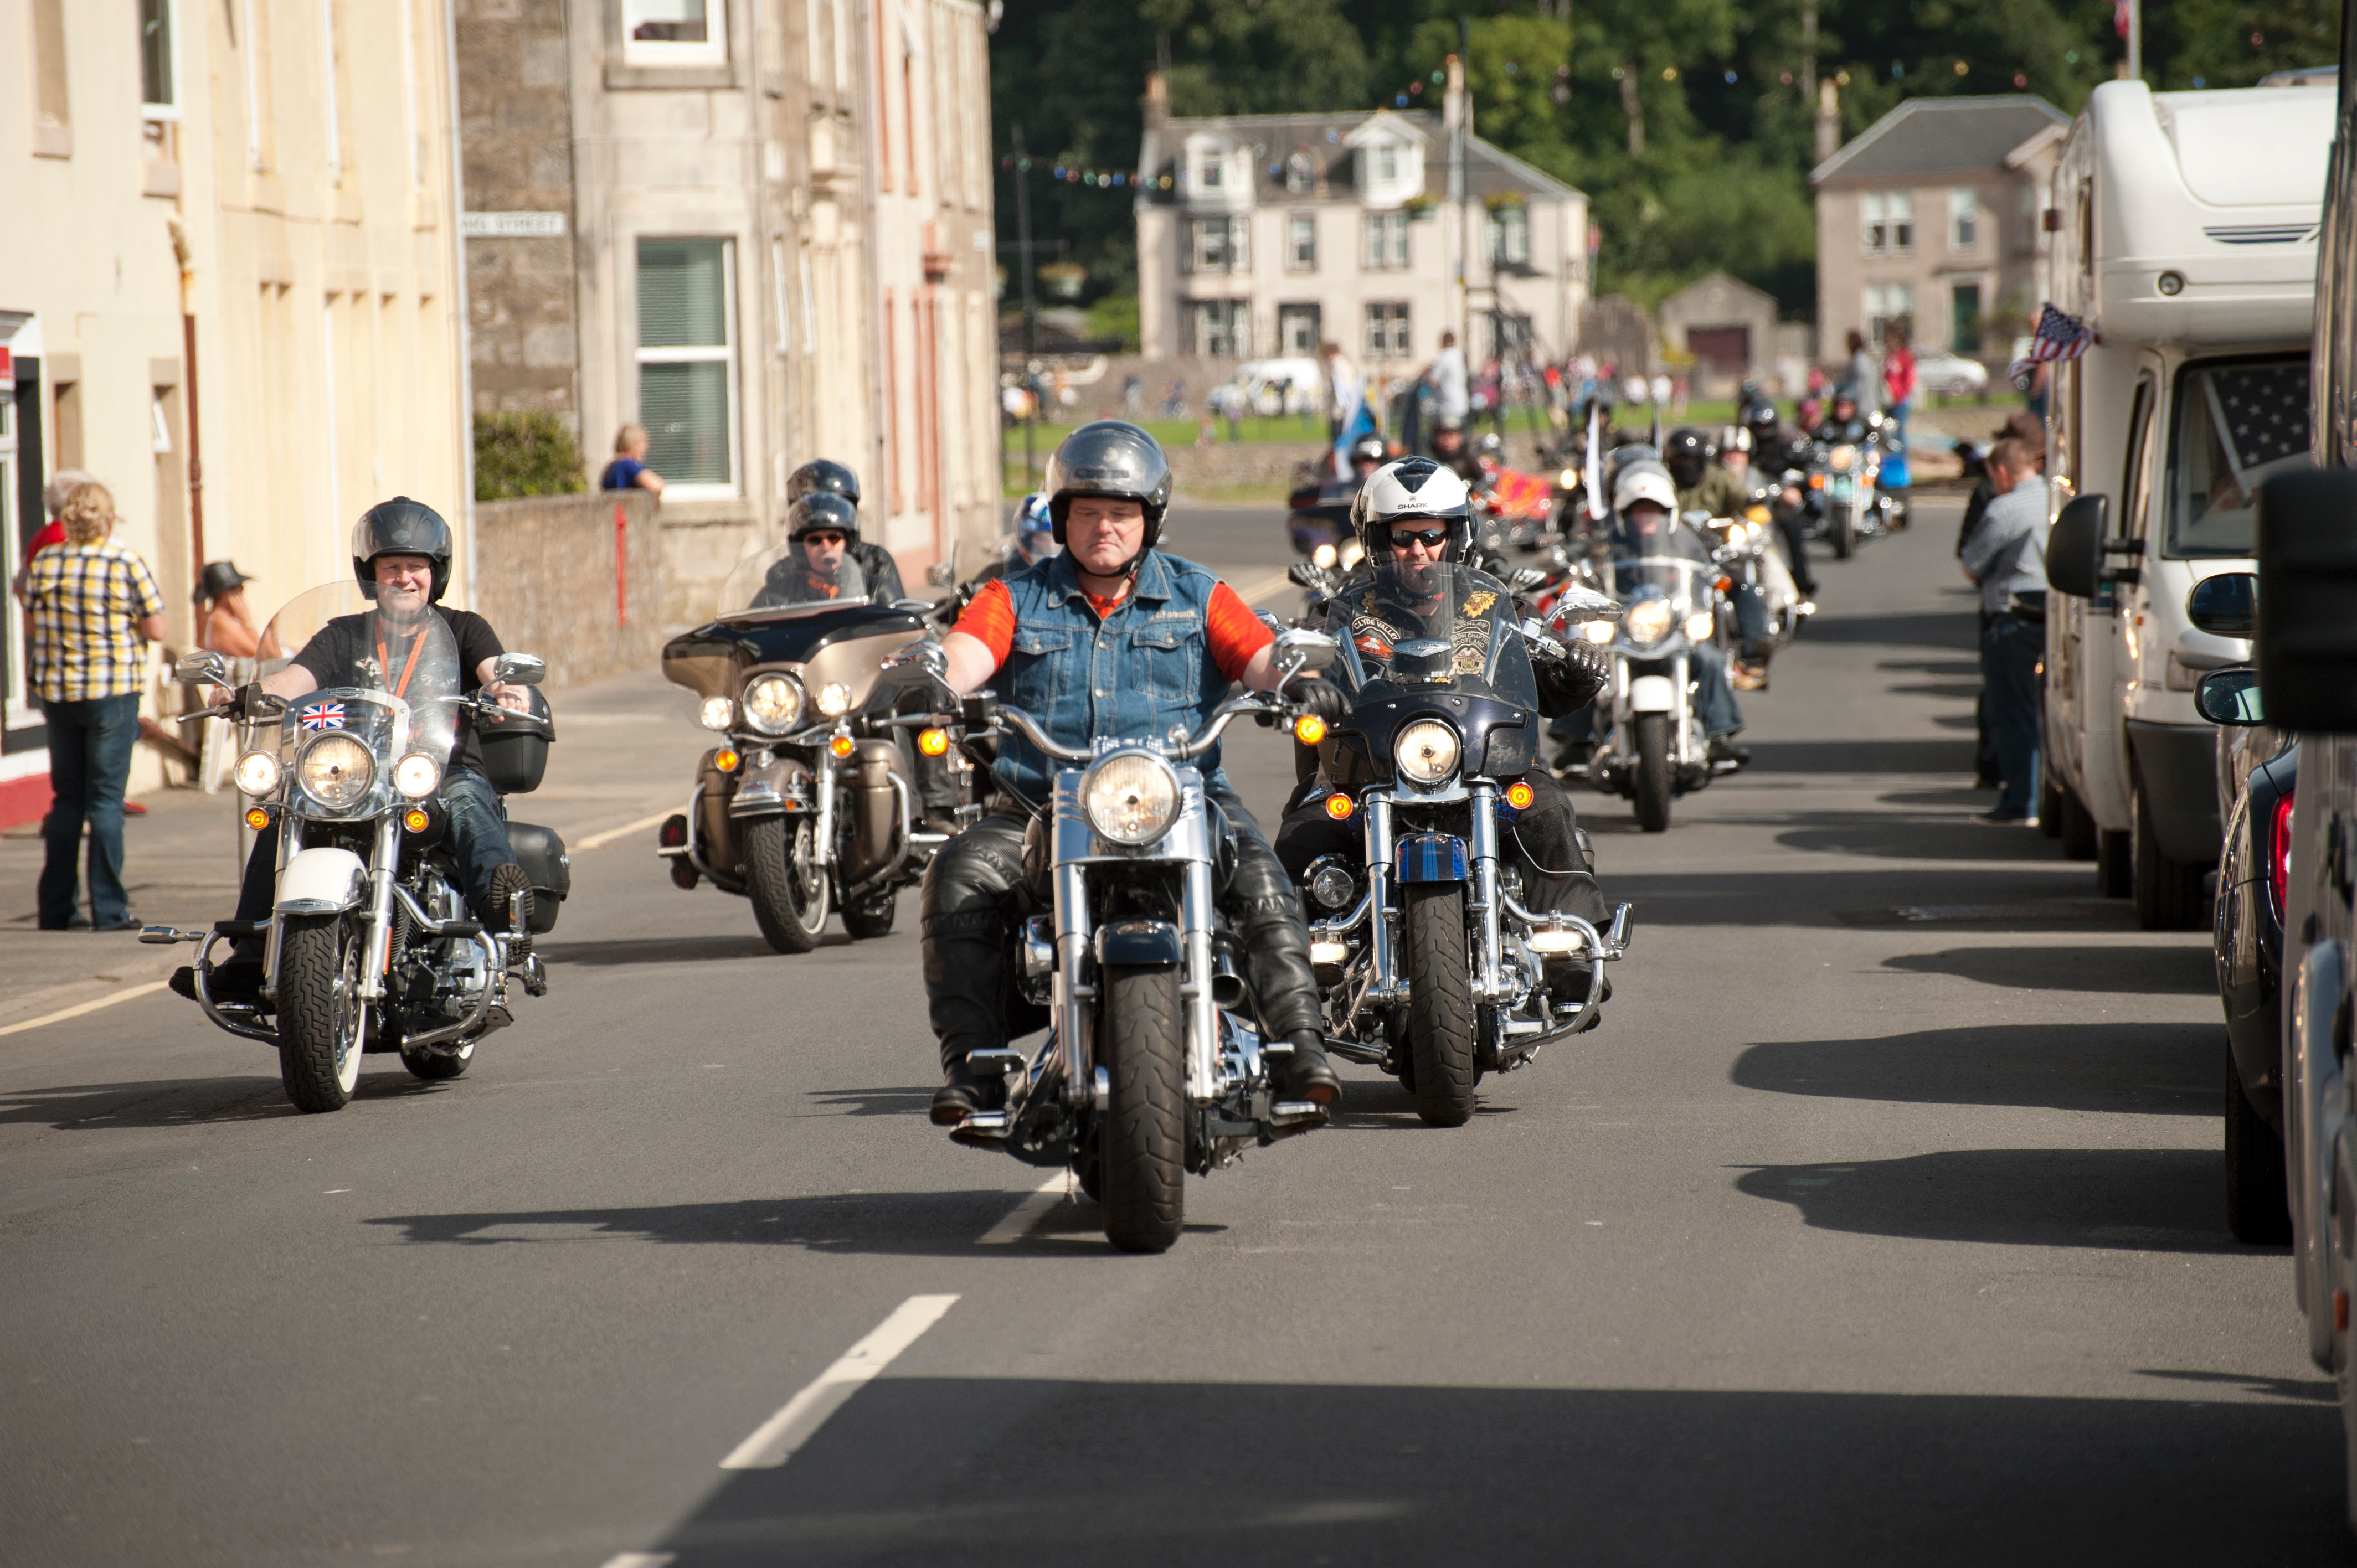 Millport Scooter Rally